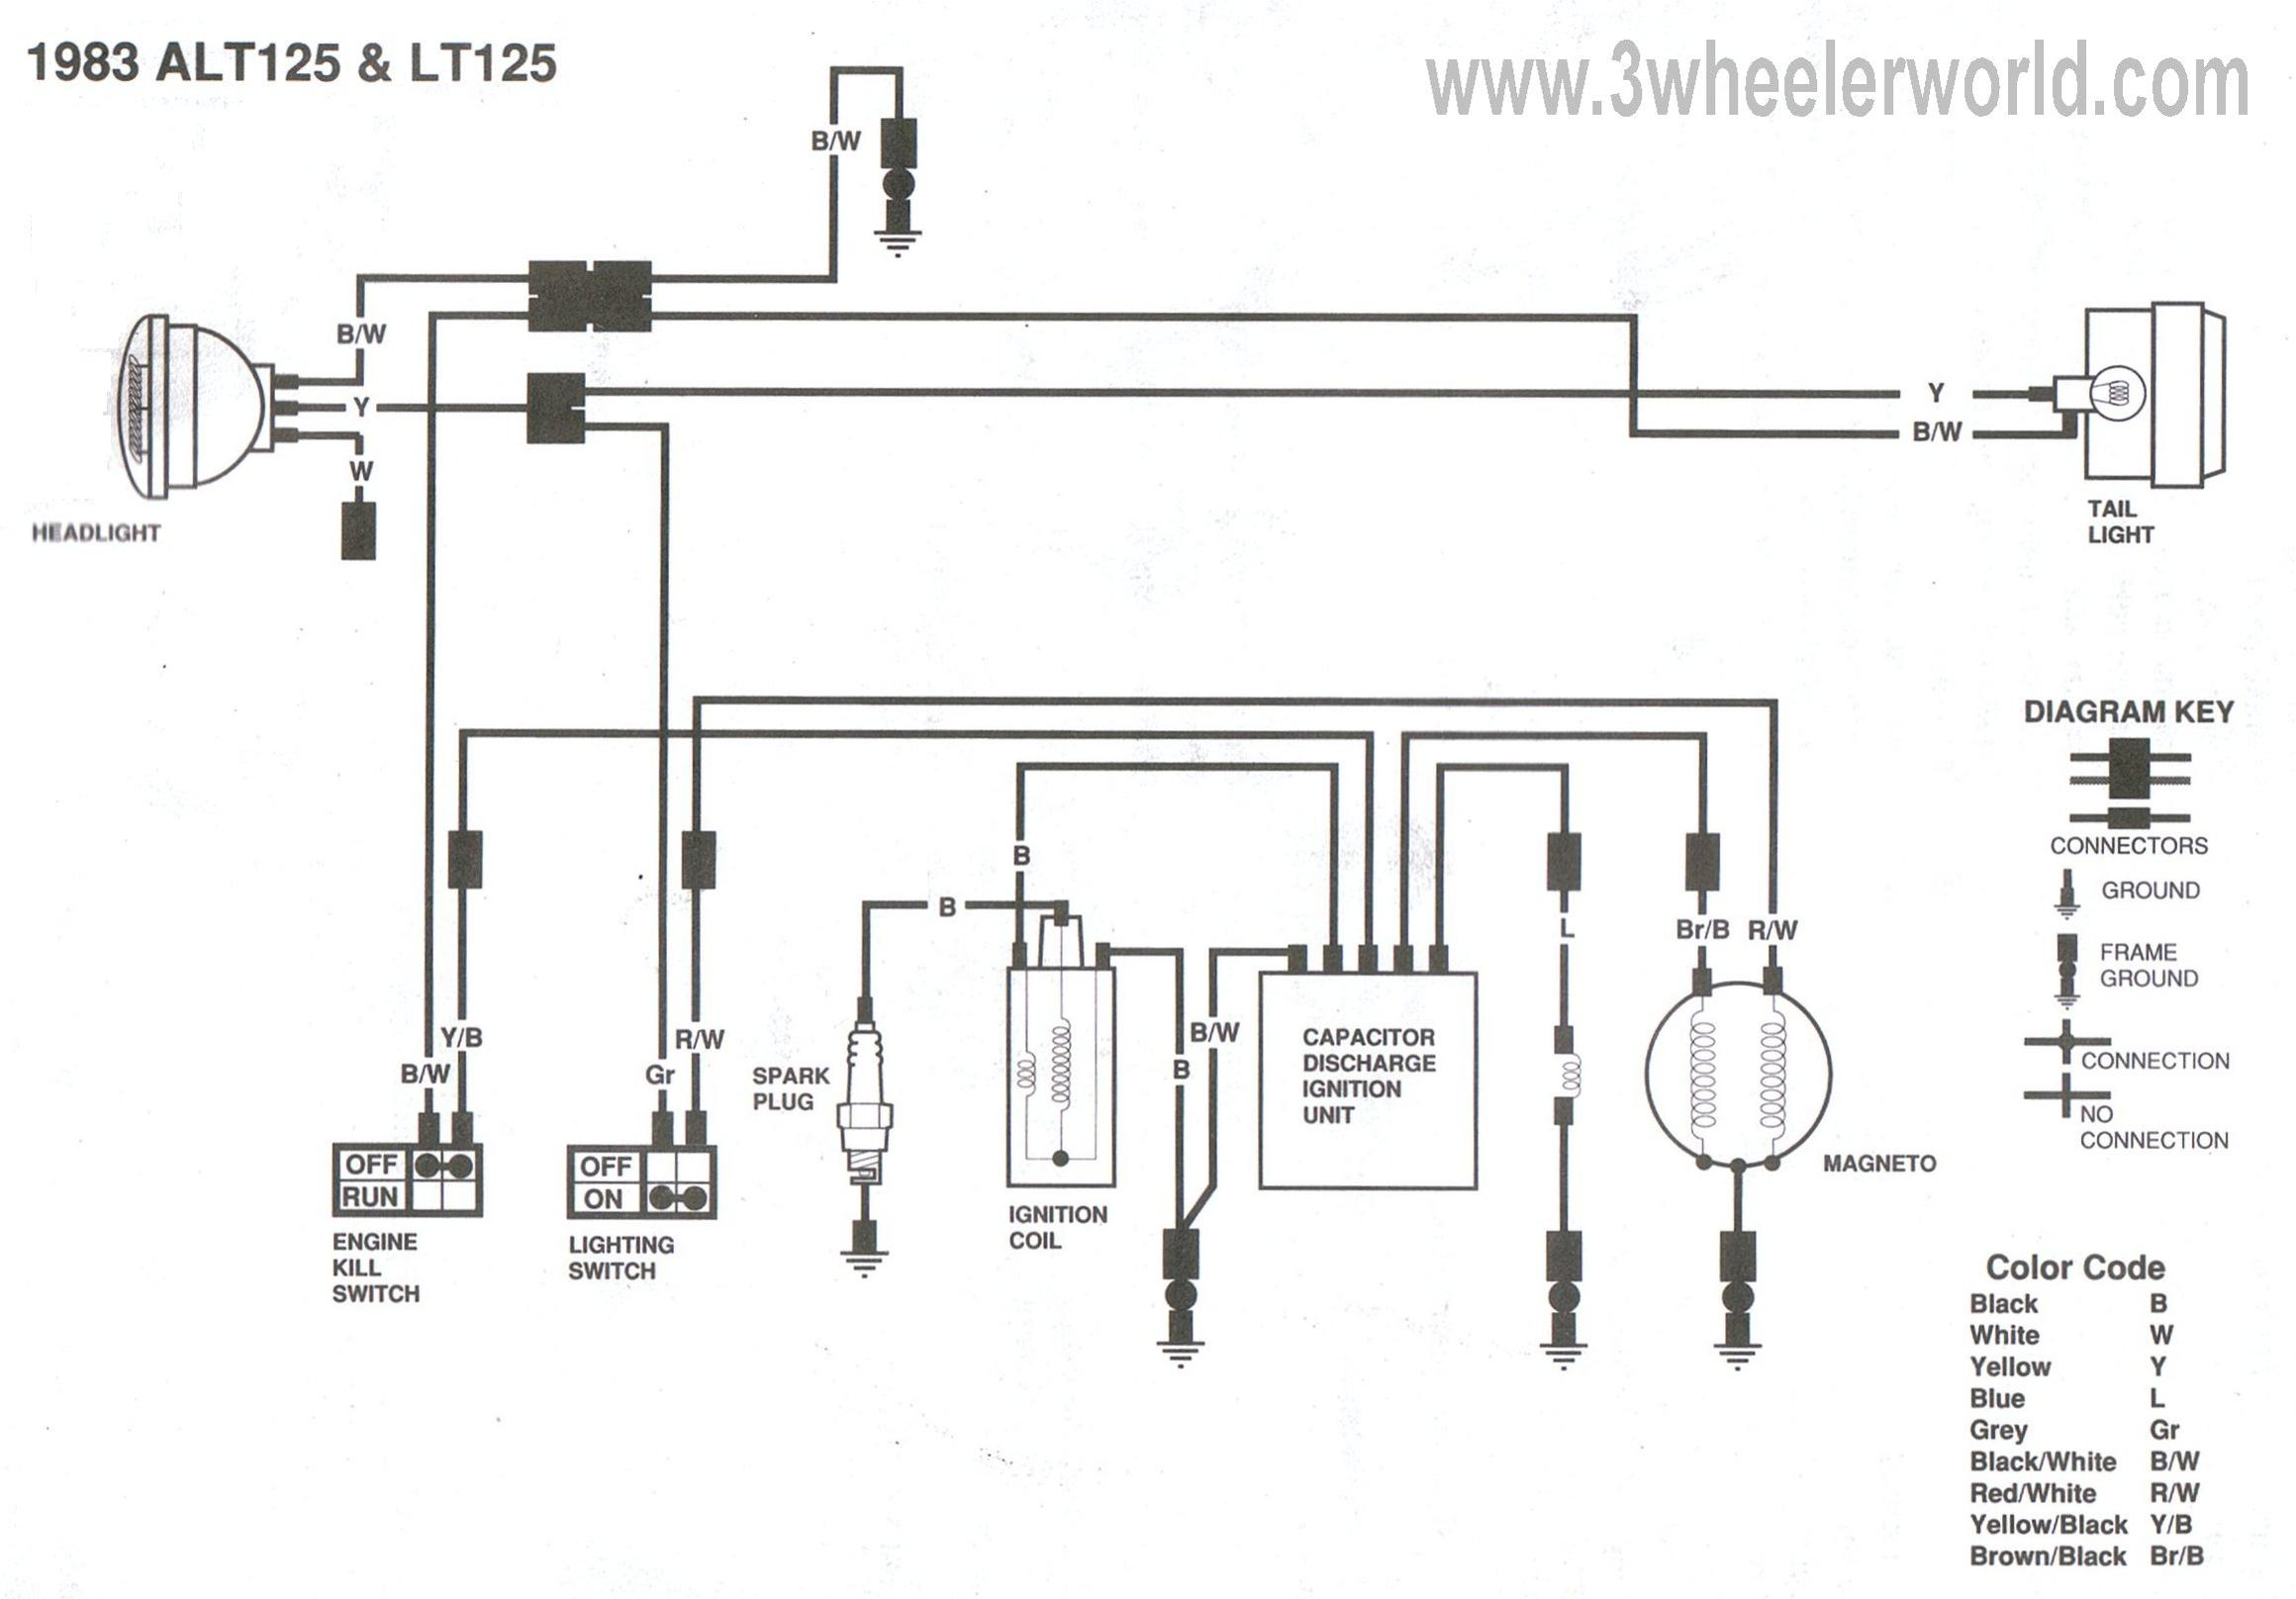 1988 Kawasaki Bayou 185 Wiring Diagram Wiring Diagram and – Kawasaki Bayou 220 Wire Diagram